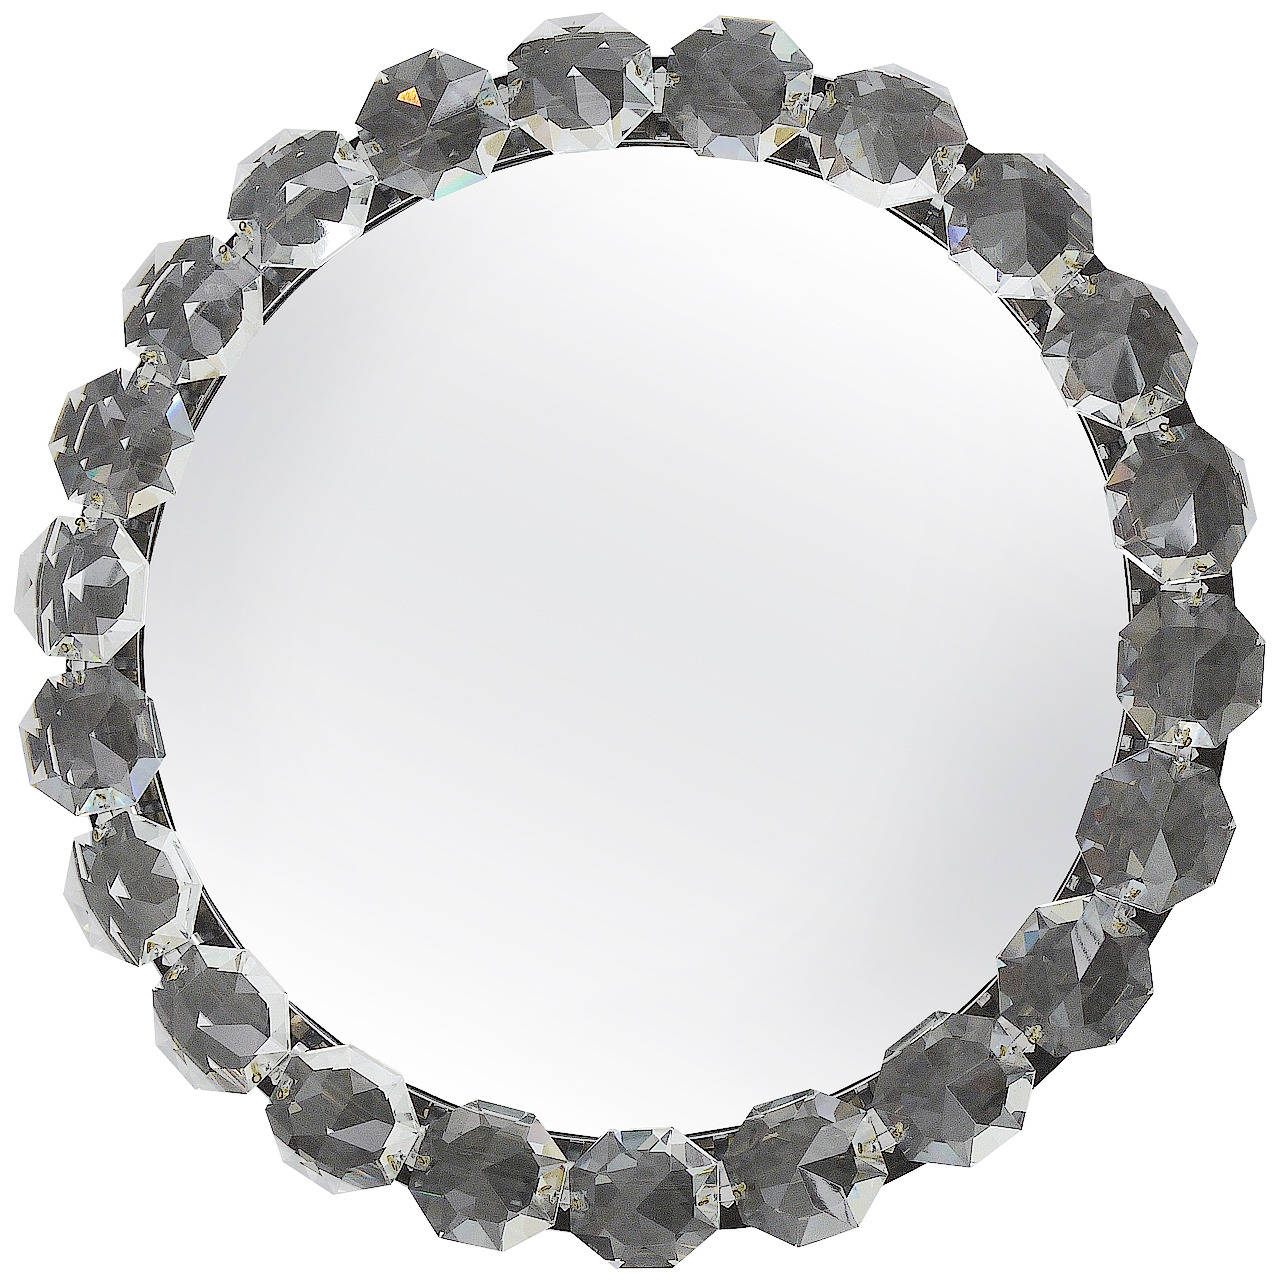 Wall Mirrors With Crystals With Regard To Recent Bakalowits Vienna Round Backlit Wall Mirror With Huge Crystals, Two Available (View 19 of 20)